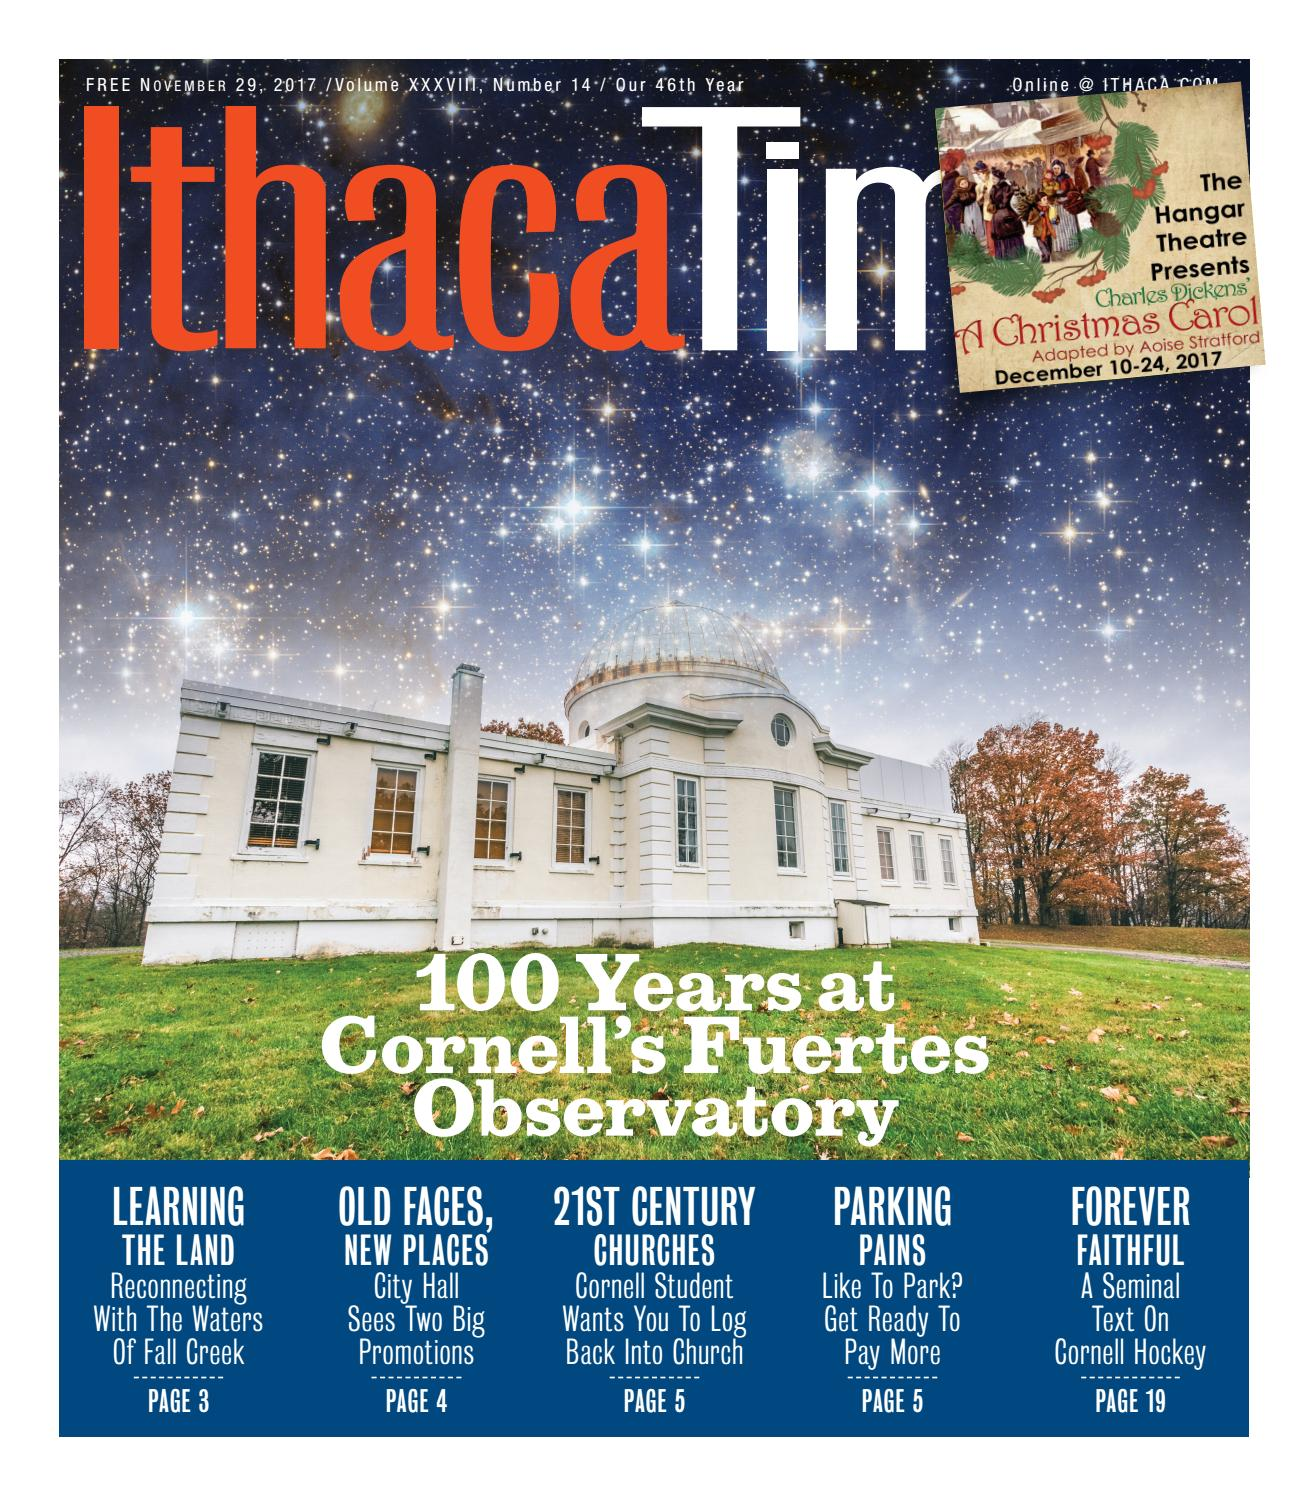 c2718401 November 29, 2017 by Ithaca Times - issuu